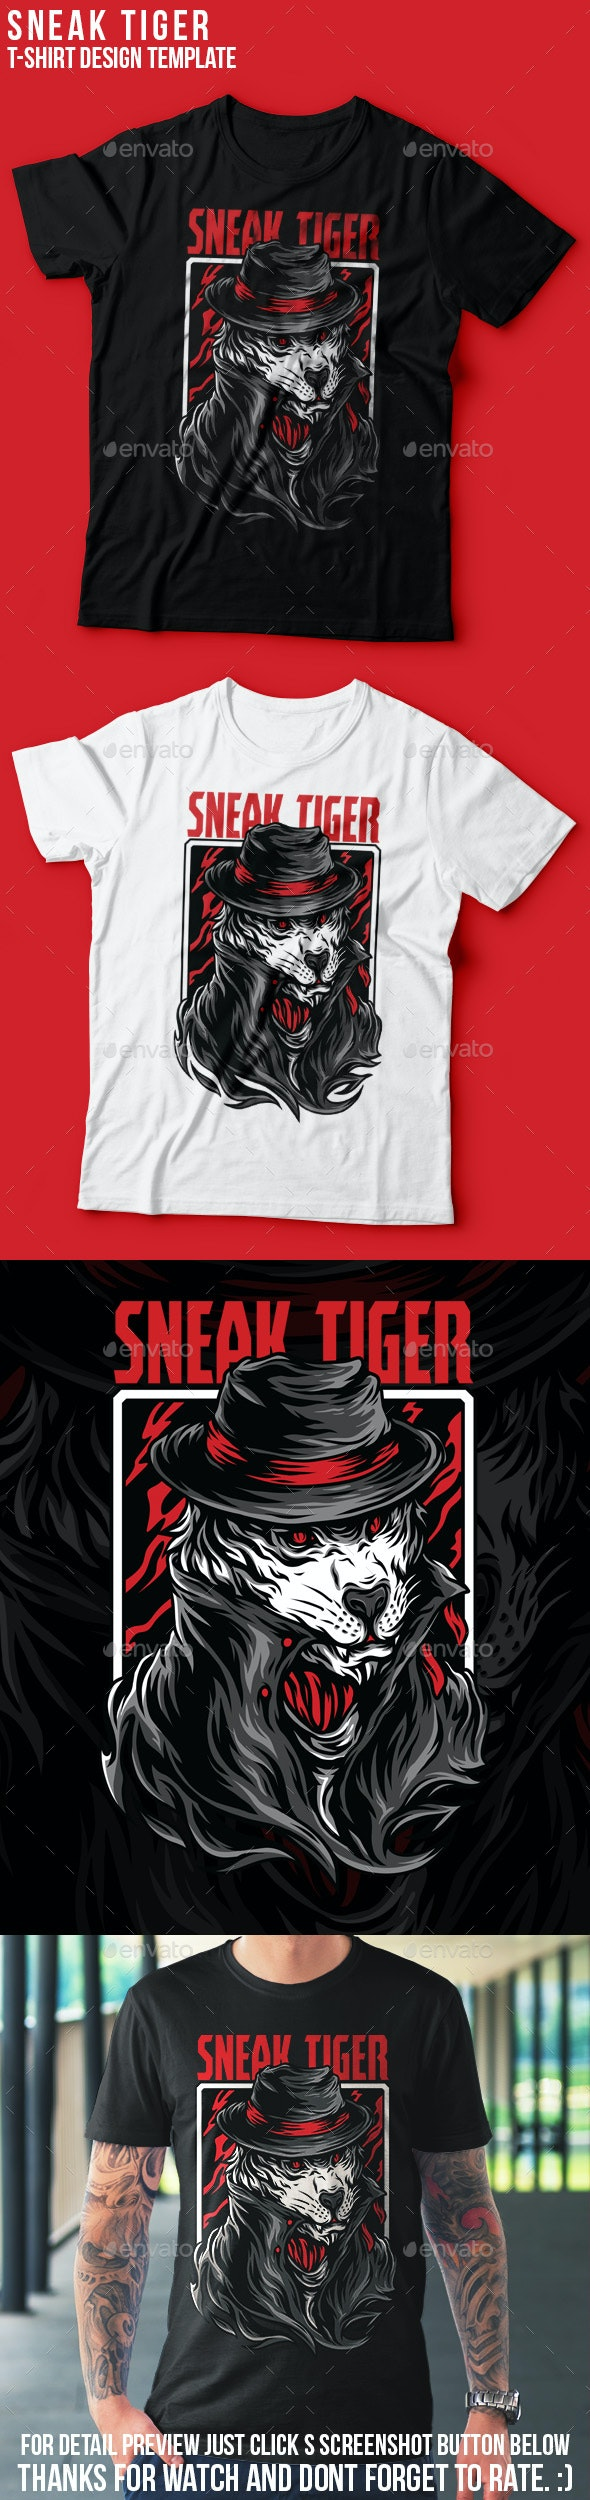 Sneak Tiger T-Shirt Design - Grunge Designs